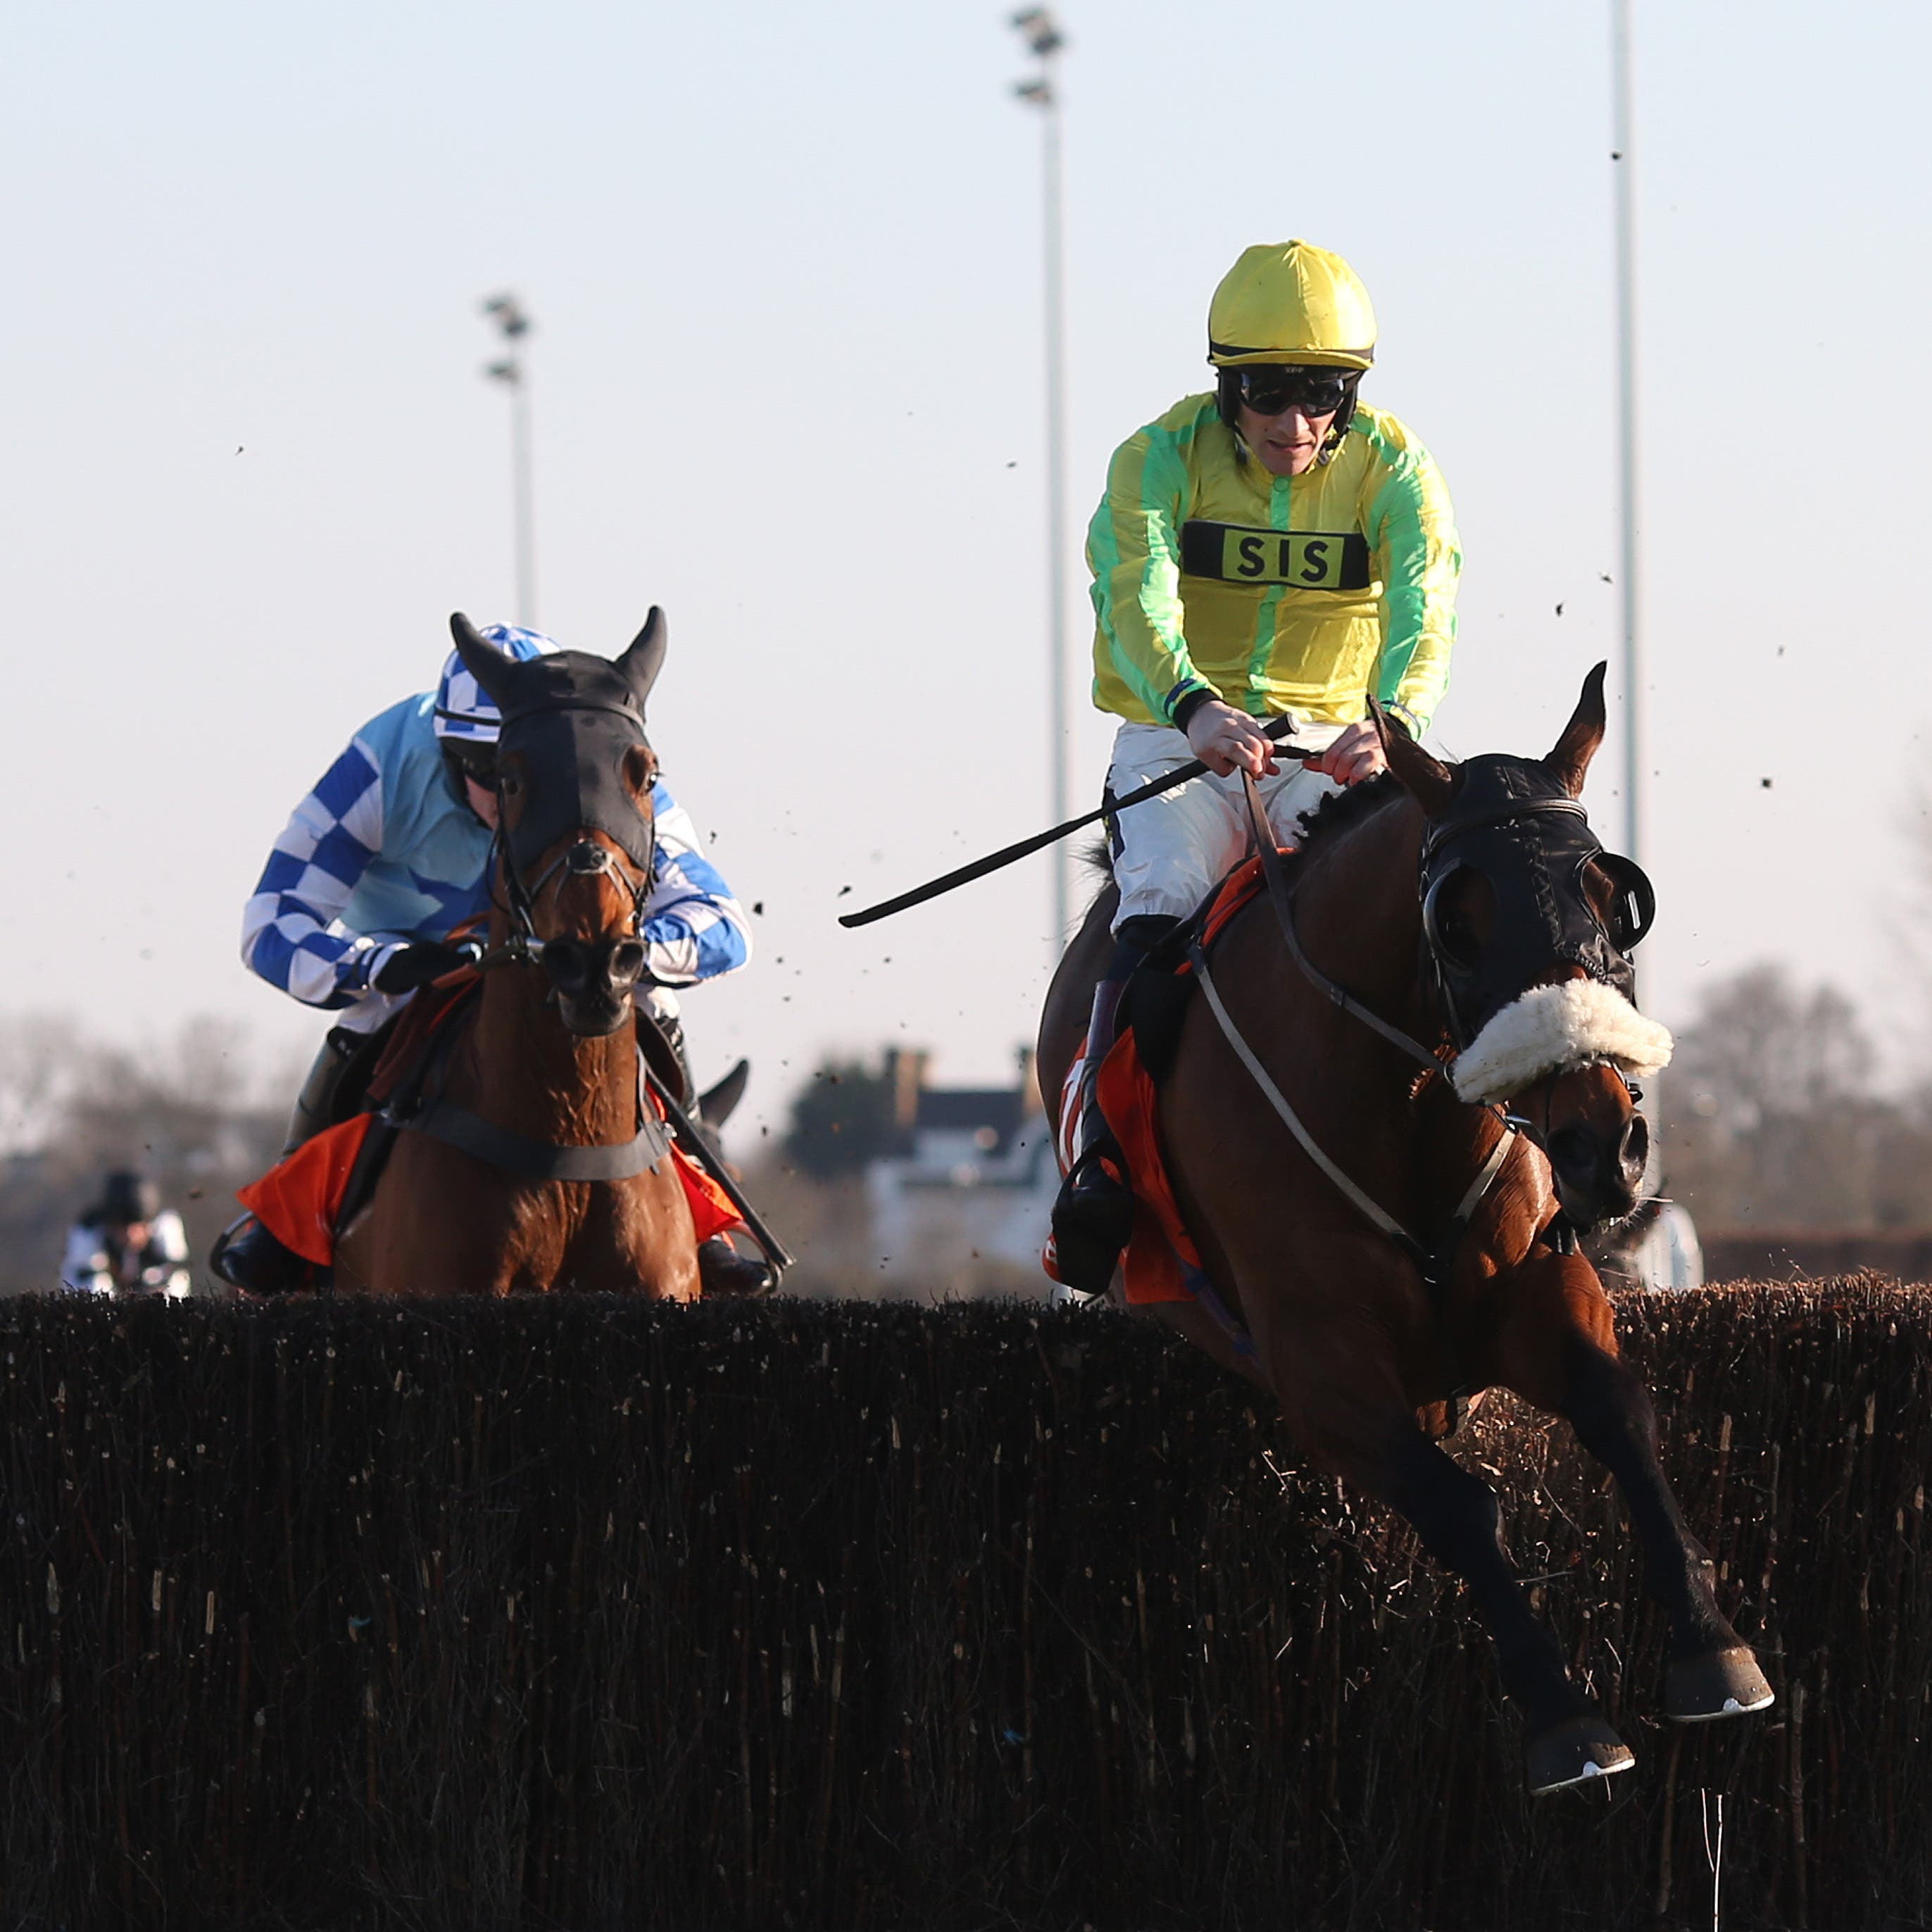 Walt and Sam Twiston-Davies clear the last fence ahead of Double Shuffle to win the 888Sport Handicap Chase at Kempton